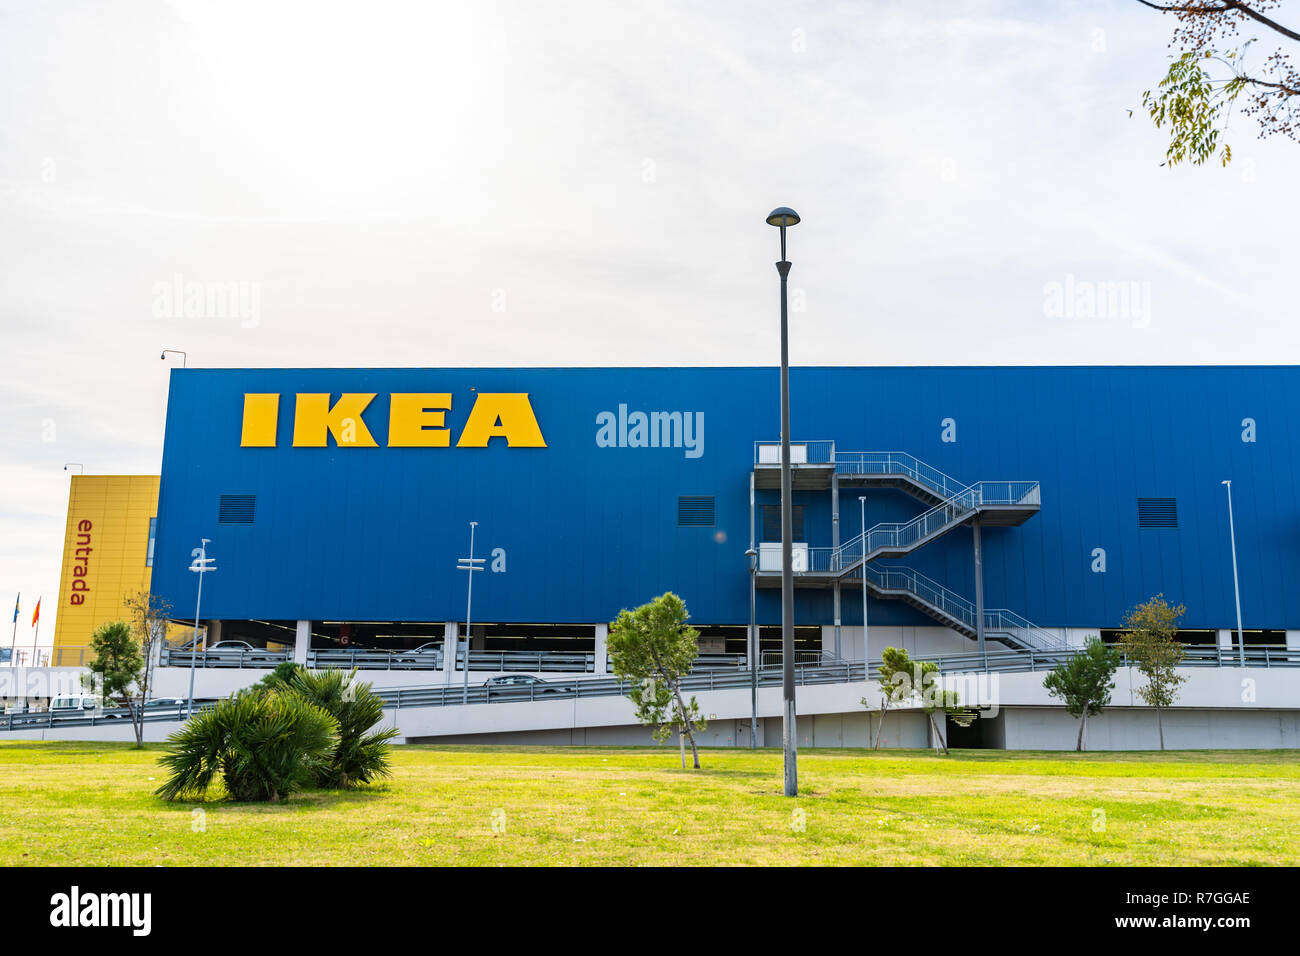 Valencia,Spain - December 09, 2018: Ikea store lot in Alfafar, Valencia. Big yellow Ikea word on blue background. Skyes on the top. Exterior view. - Stock Image